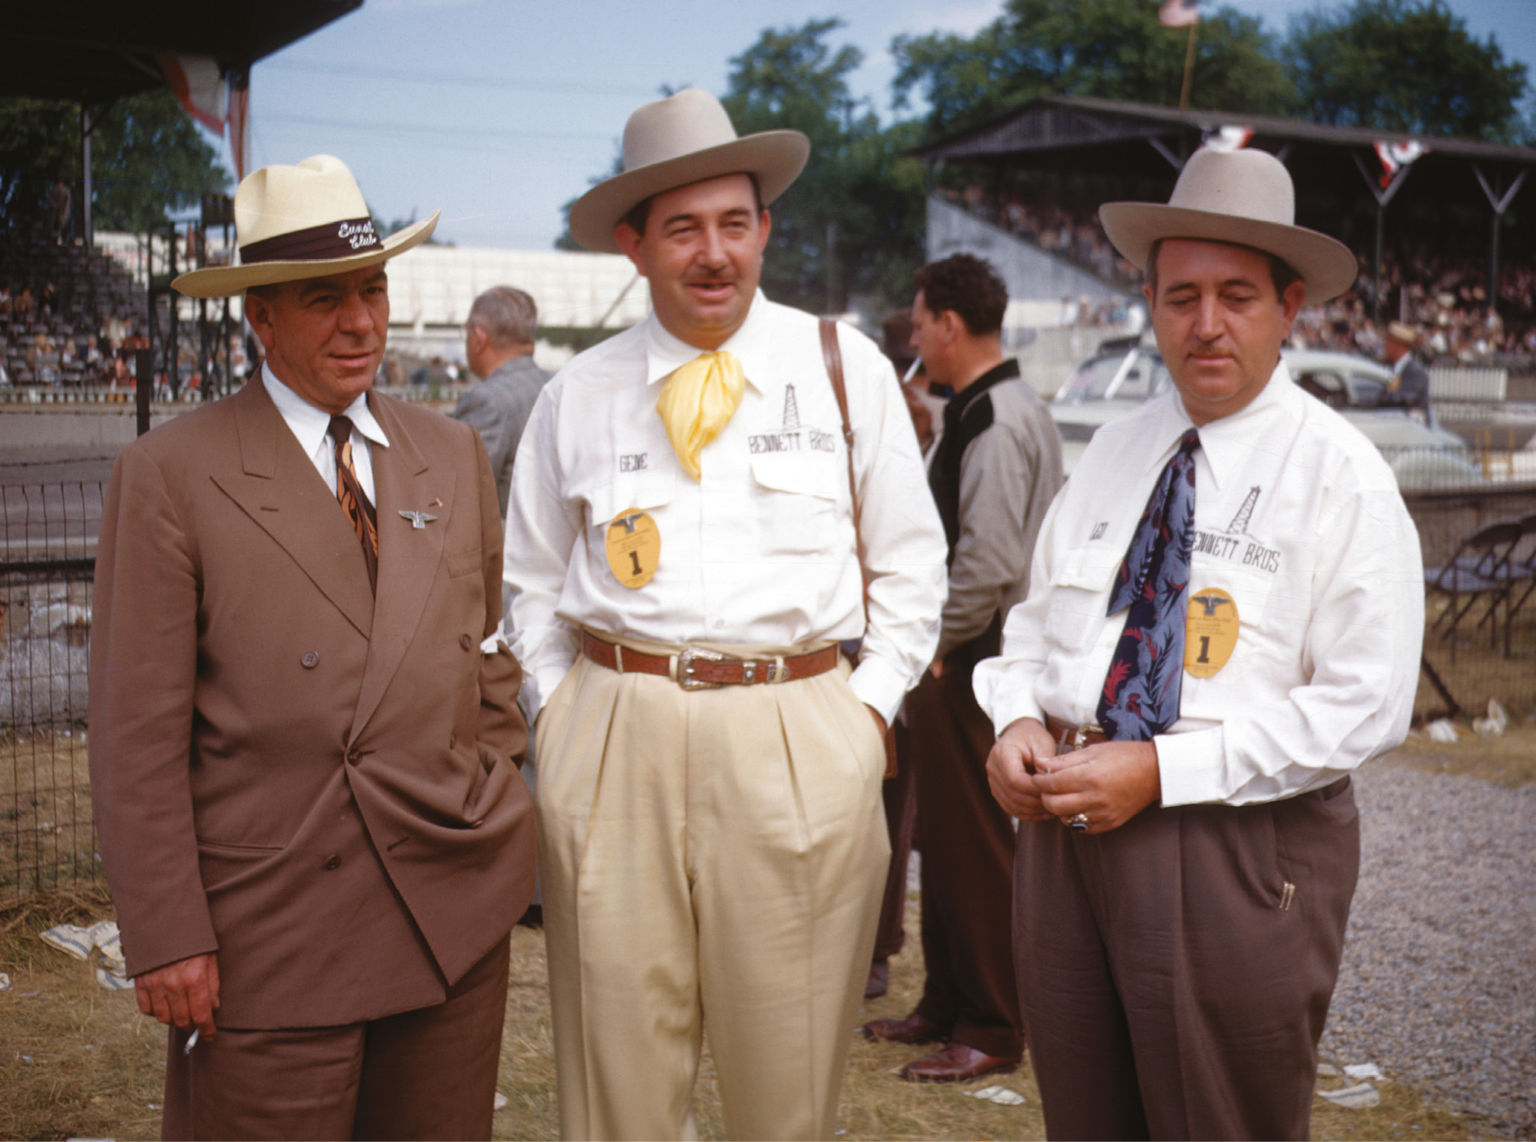 Paddock wear 1948 style: fashion tips from Indianapolis